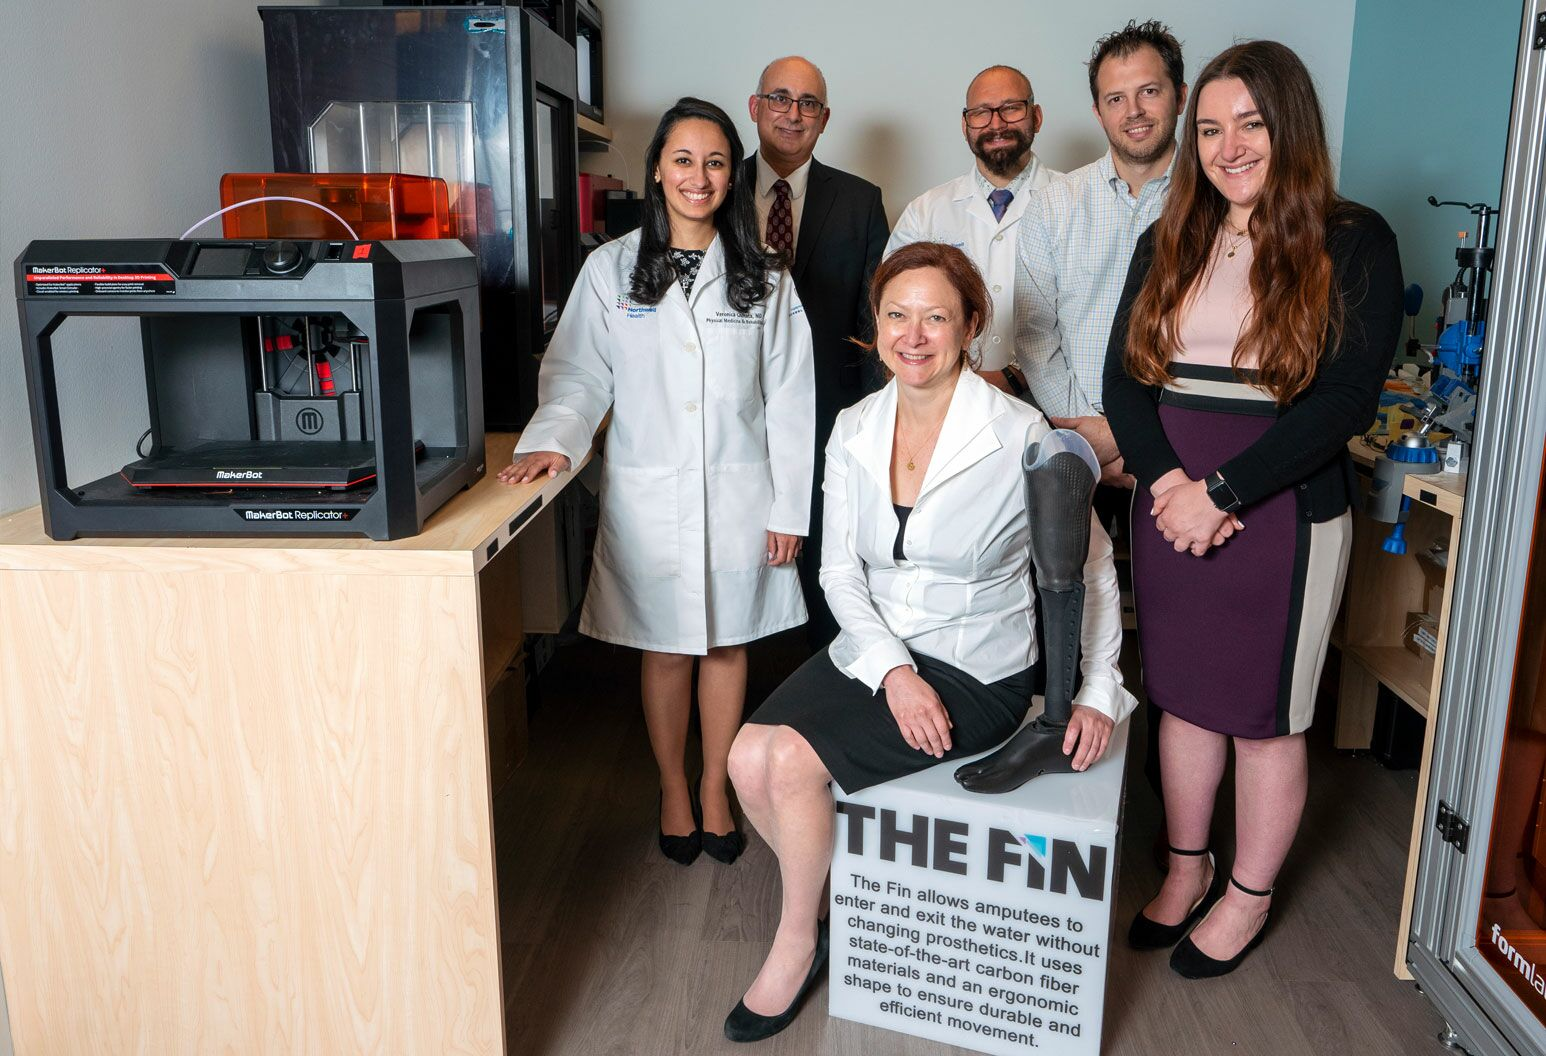 The Fin - Feinstein Institutes for Medical Research